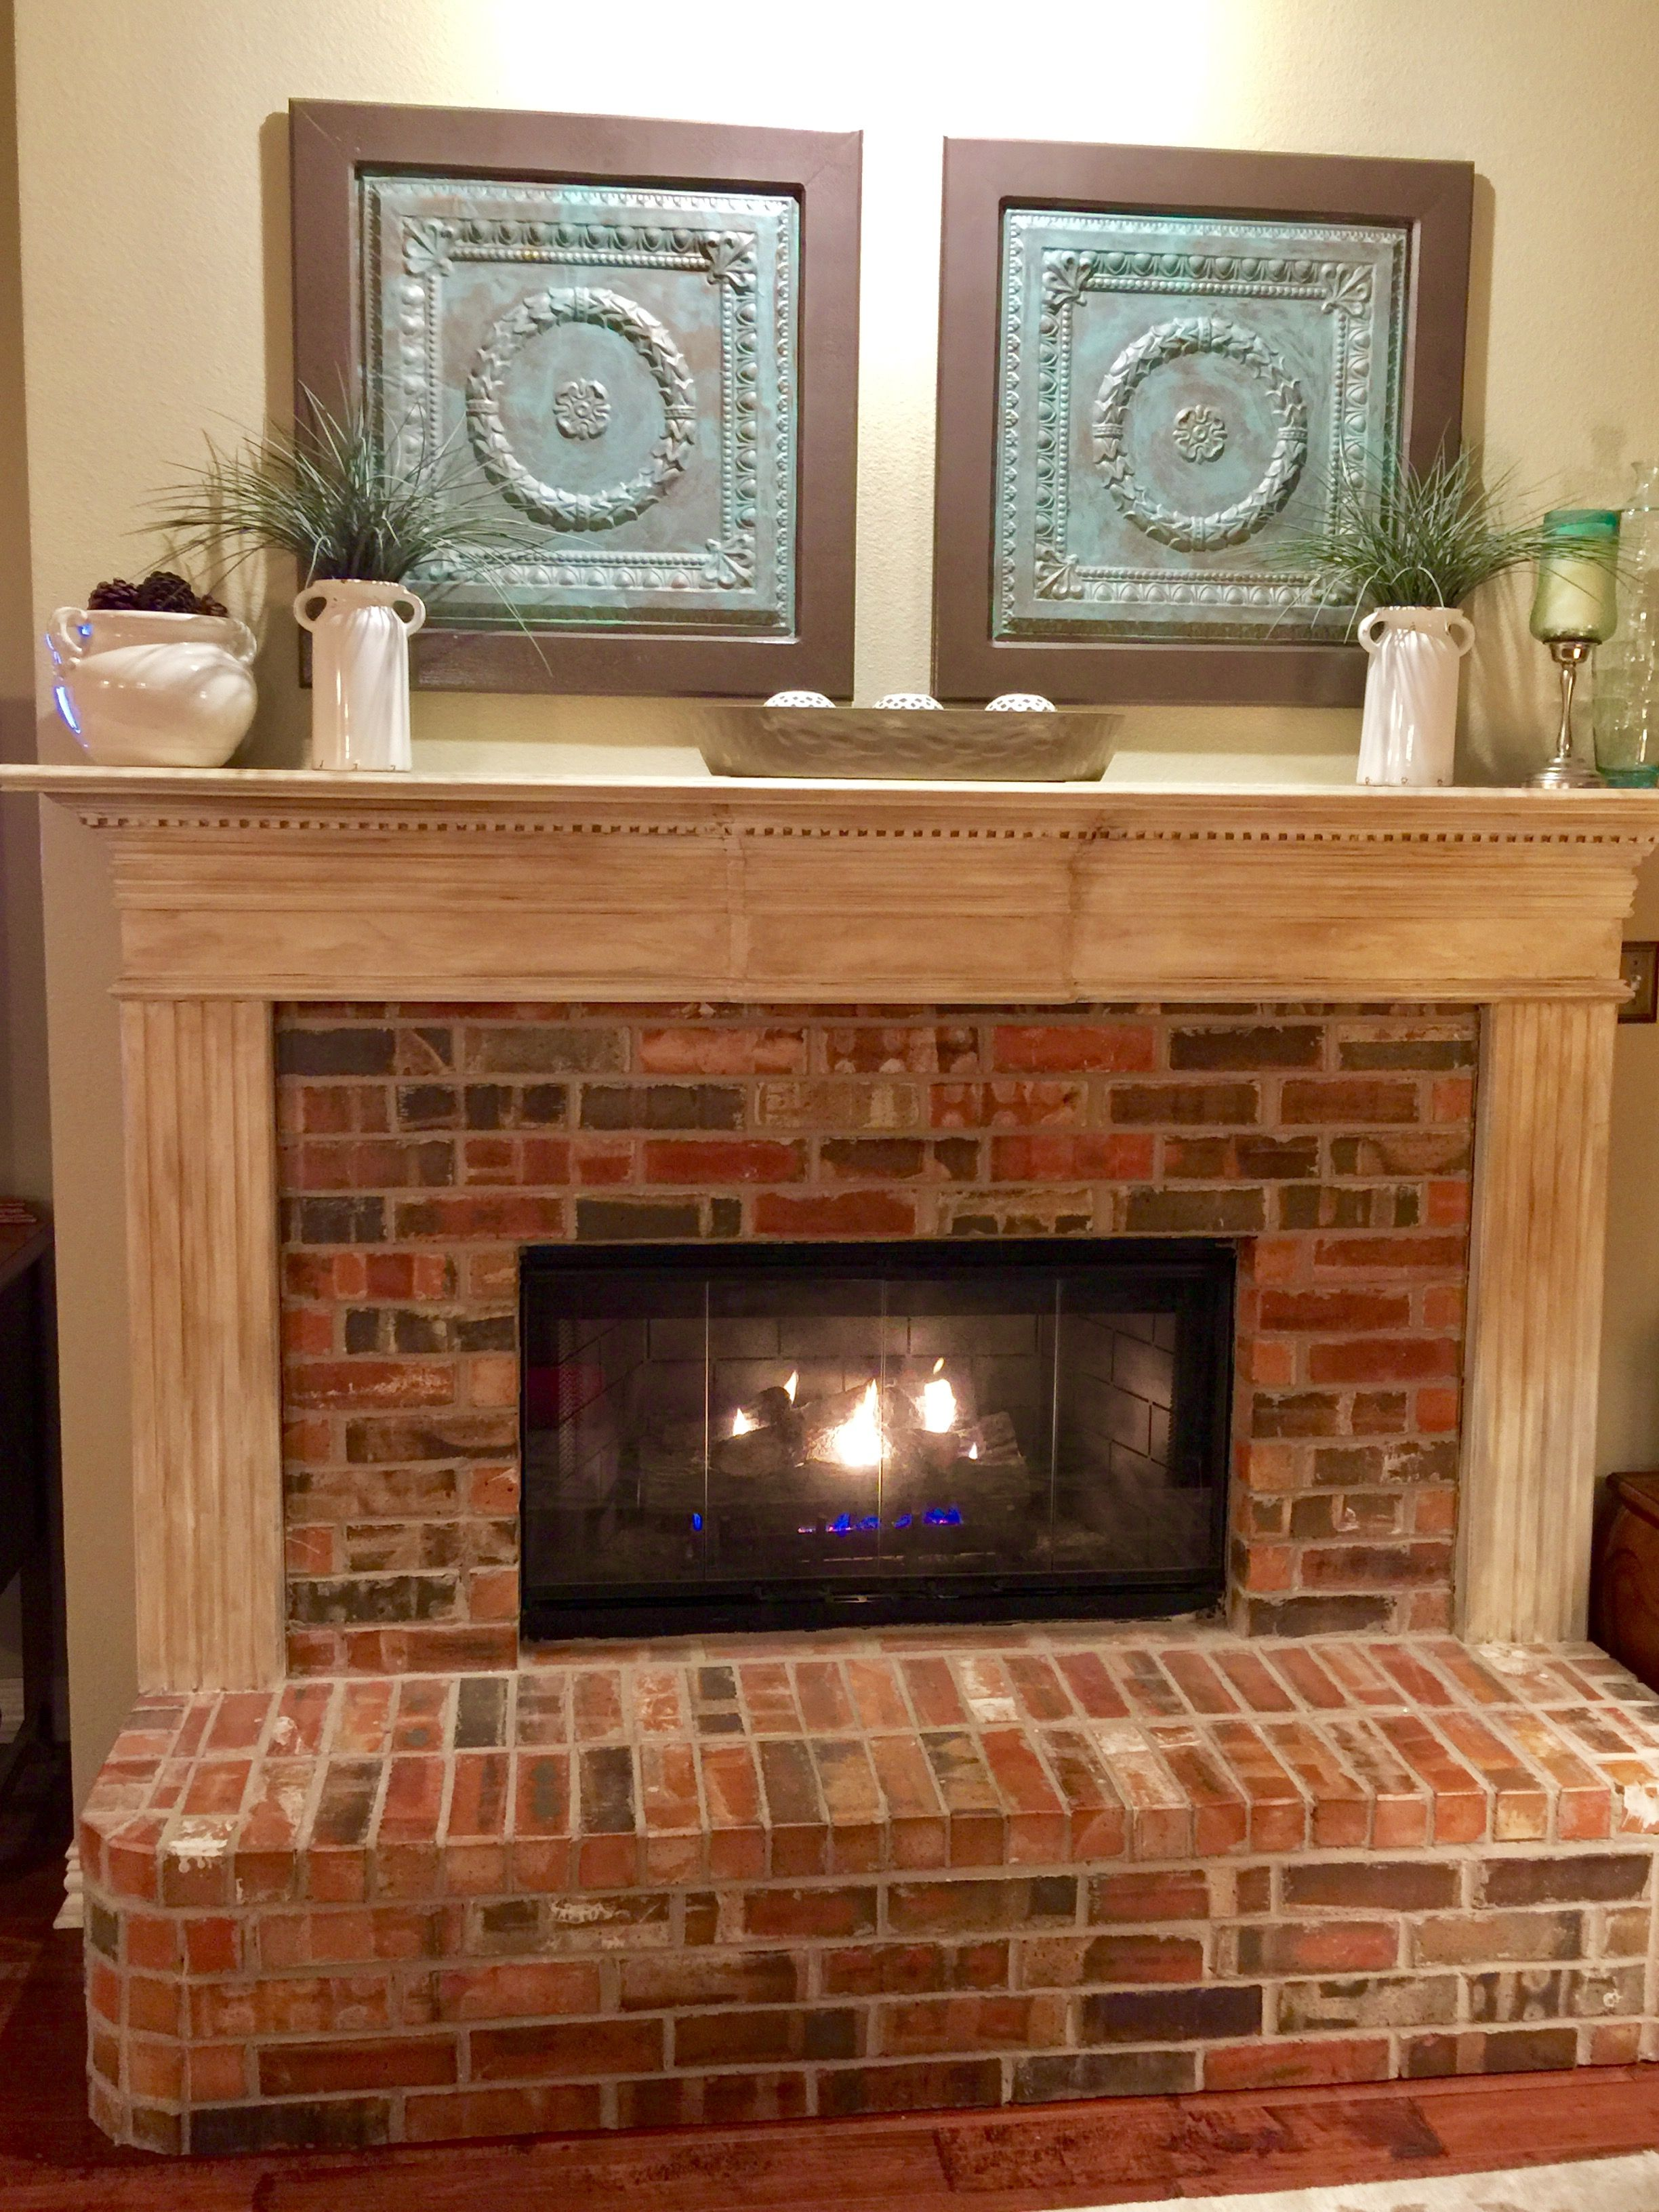 Annie sloan mantle makeover brick fireplace refurbished ceiling annie sloan mantle makeover brick fireplace refurbished ceiling tiles simple decor dailygadgetfo Image collections